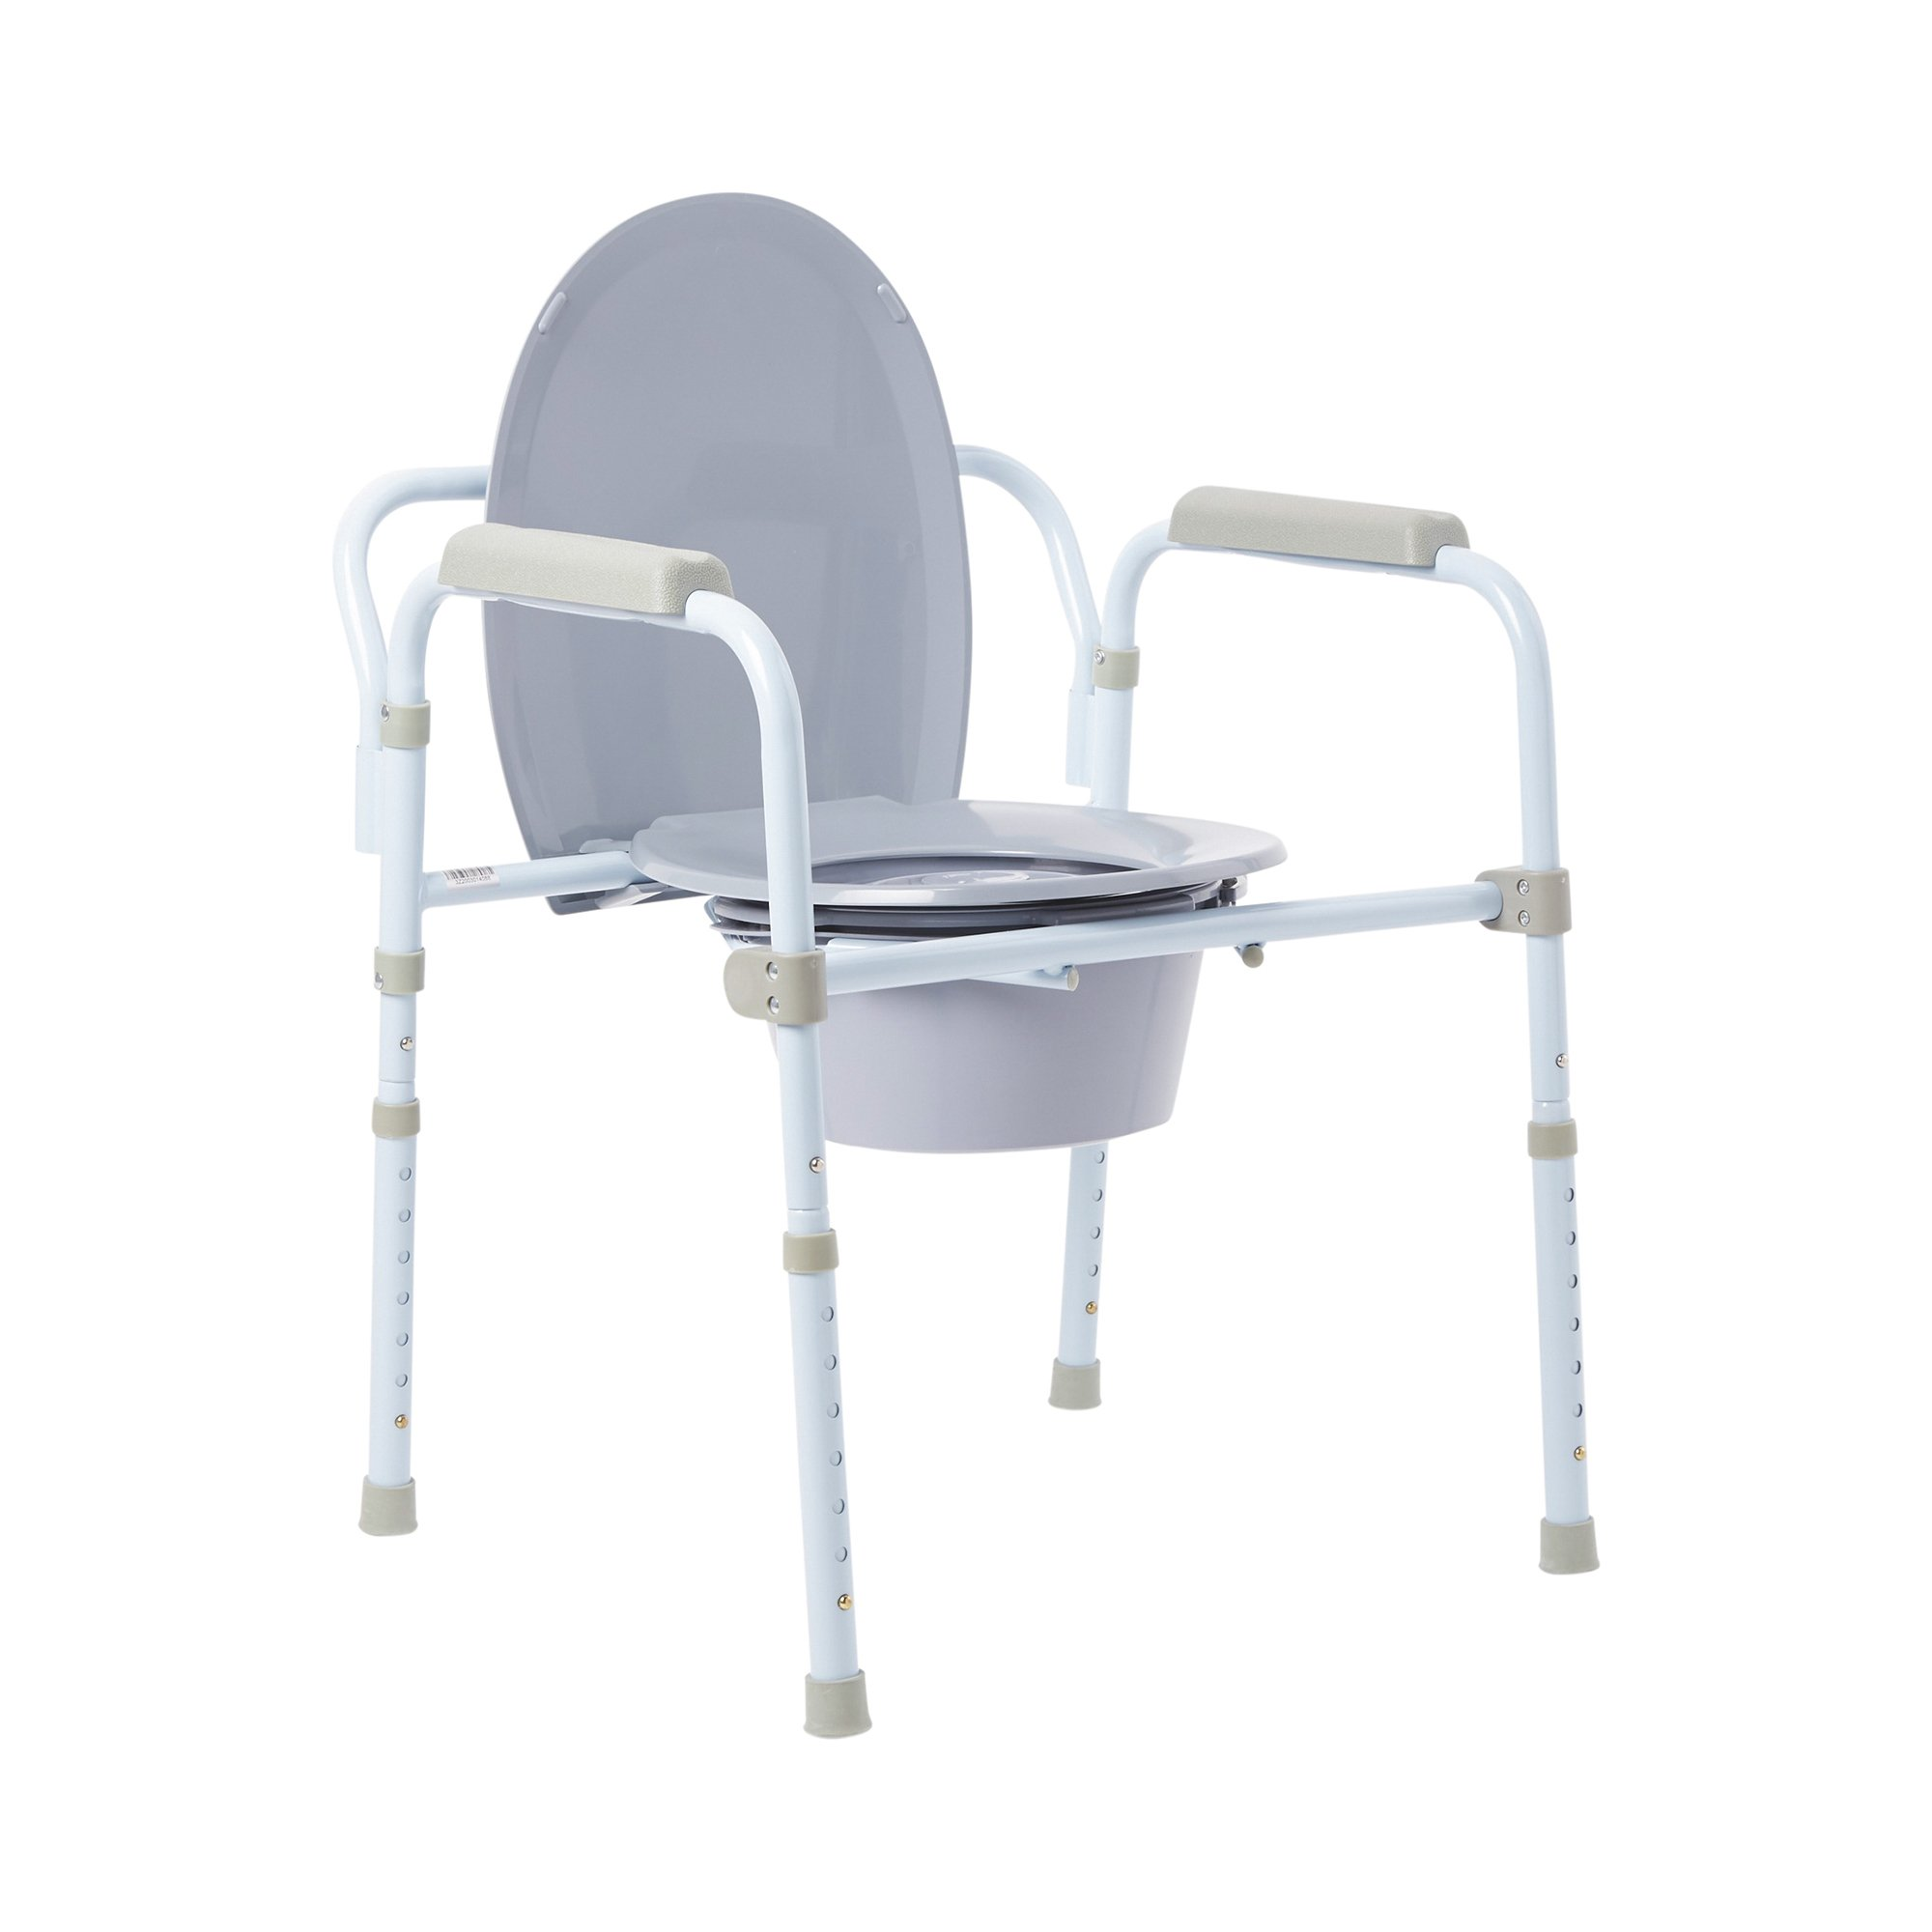 """McKesson Fixed Arm Steel Folding Commode Chair, 146-RTL11158KDR, 13.75"""" - 1 Each"""